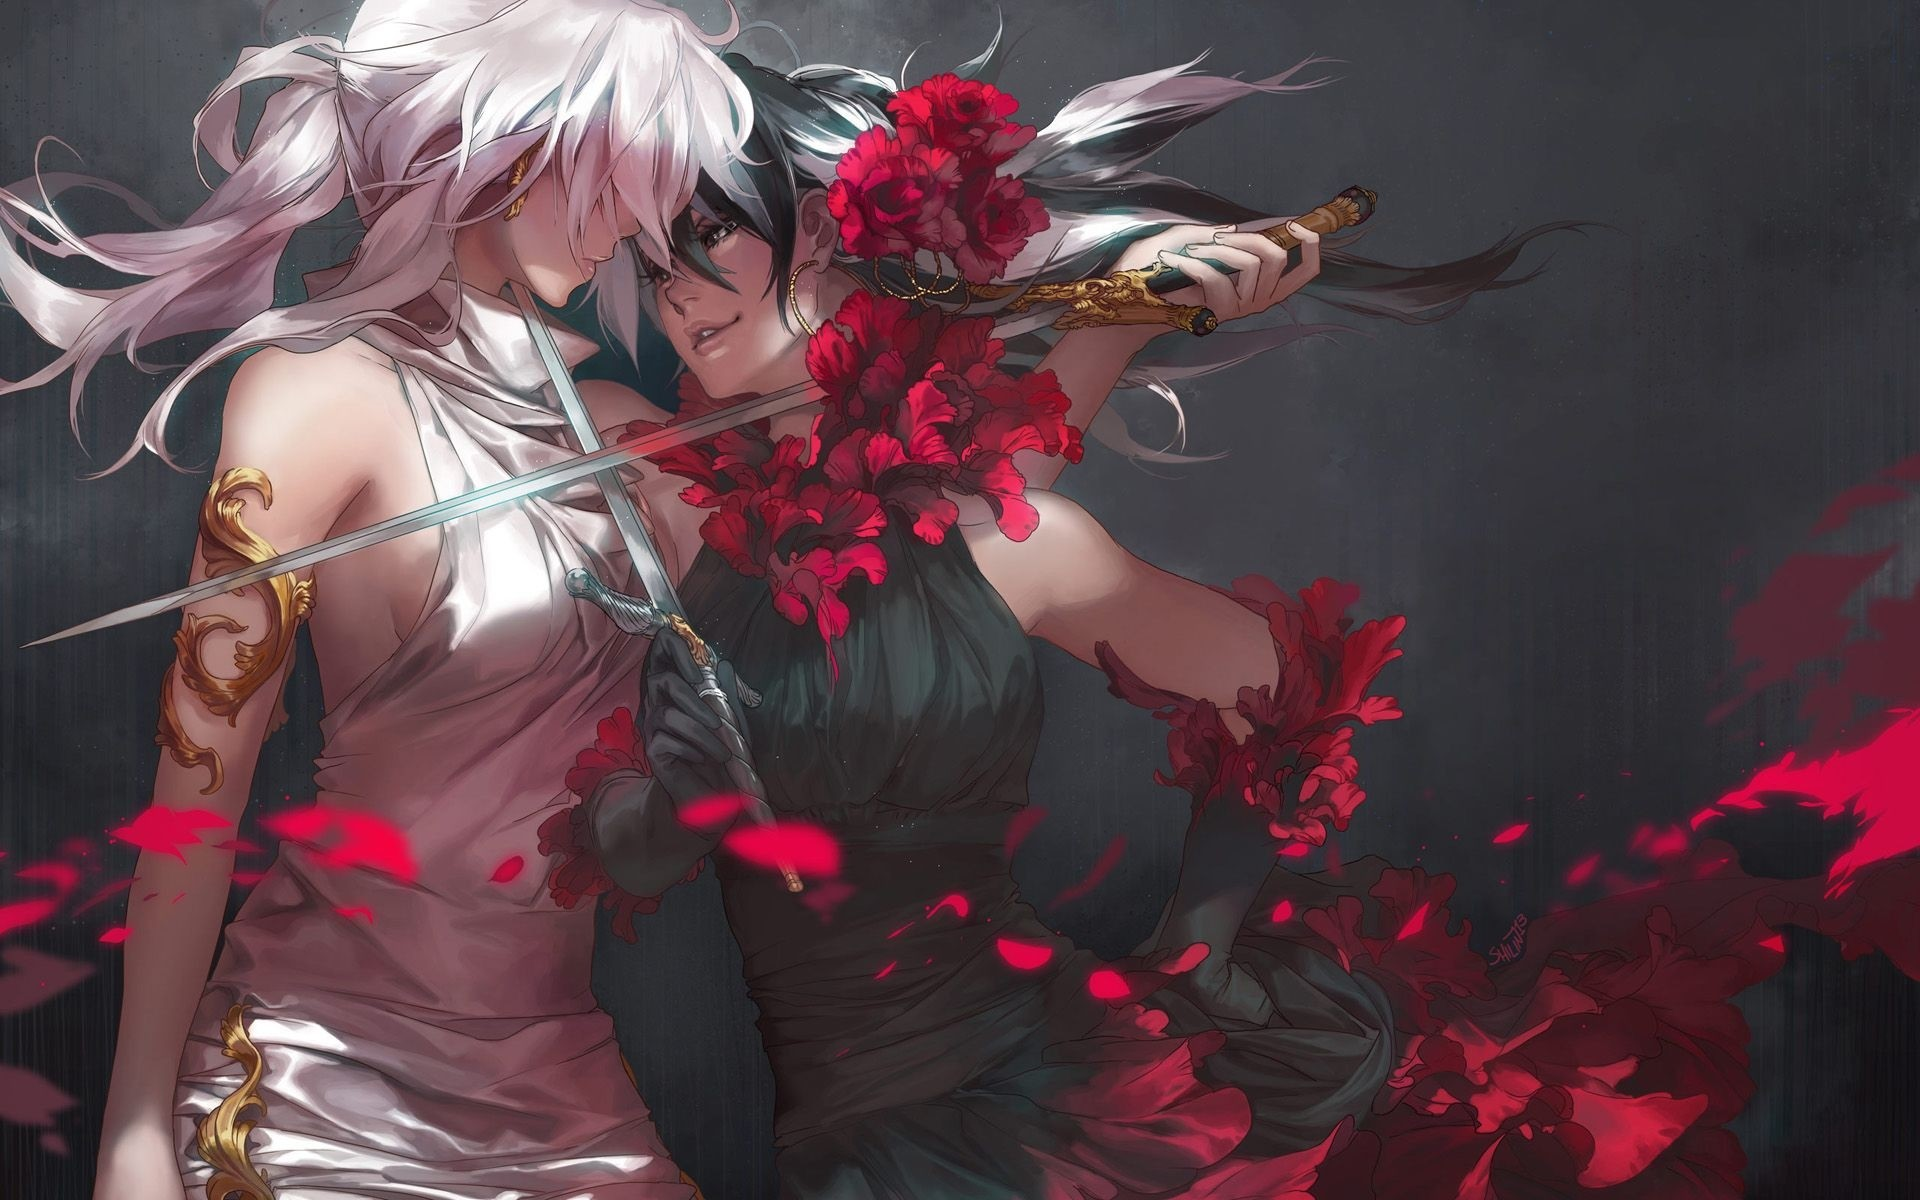 Res: 1920x1200, Best of Anime Fighter Girl Wallpaper Collection - two girls fighting blade  sword beautiful female flower